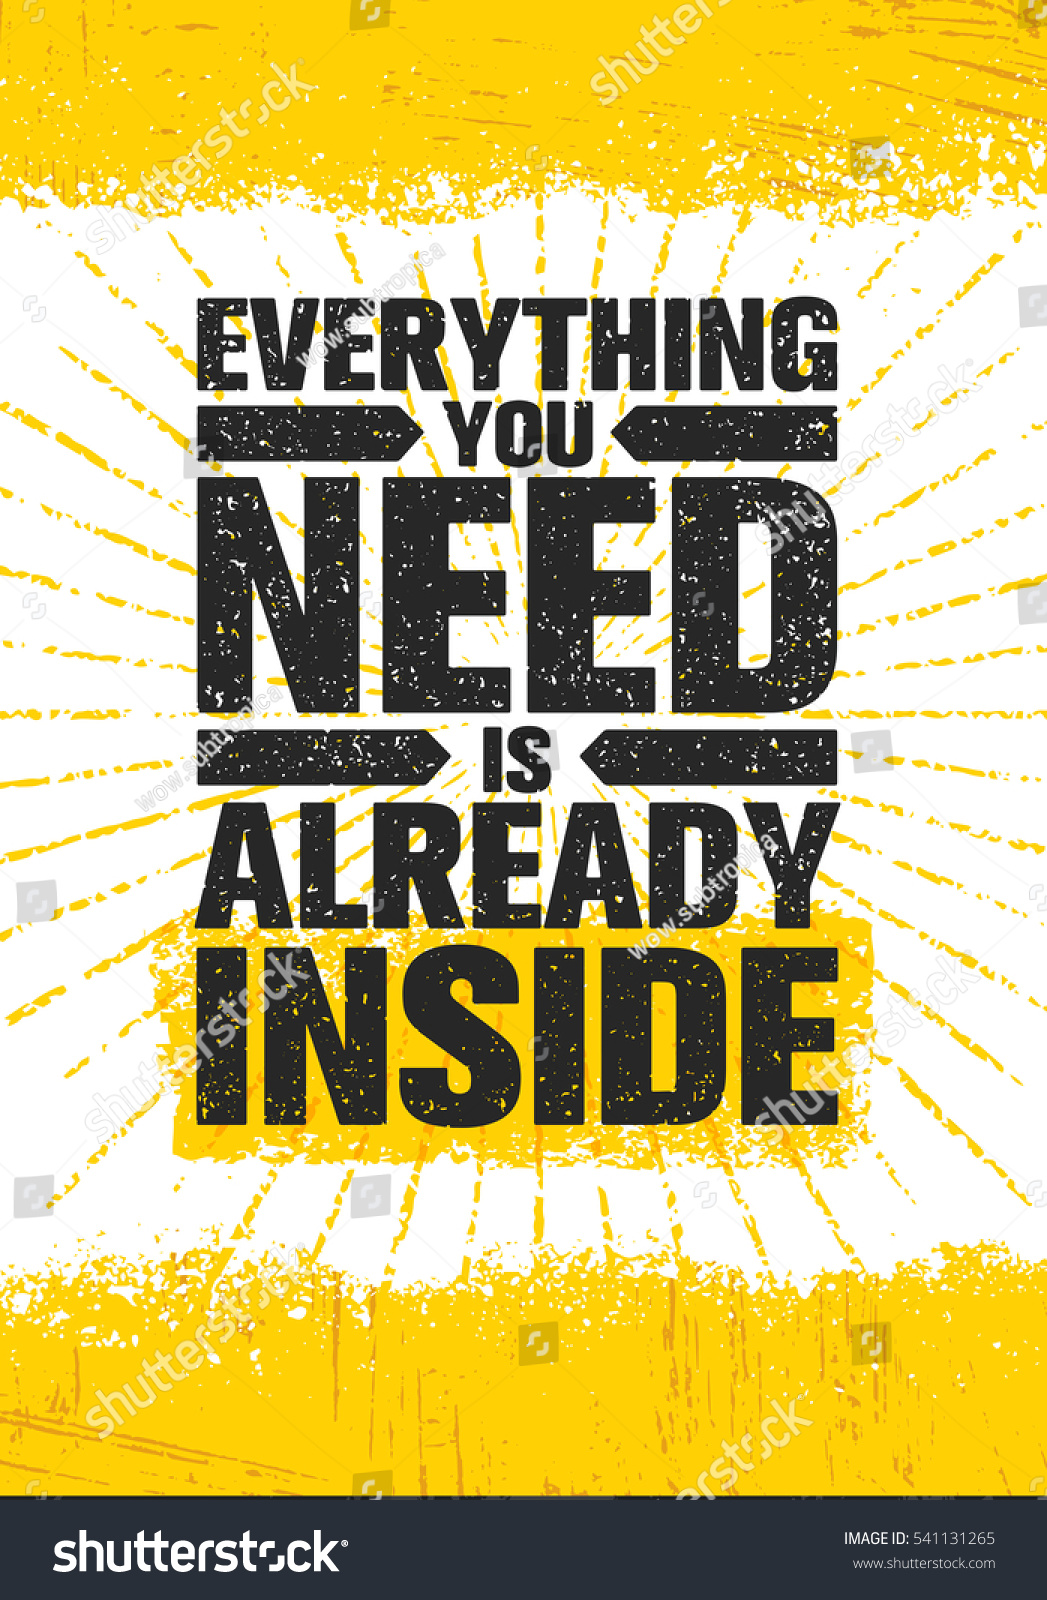 And Everything Else Too All Kinds Of Neighbors: Everything You Need Already Inside Poster Stock Vector